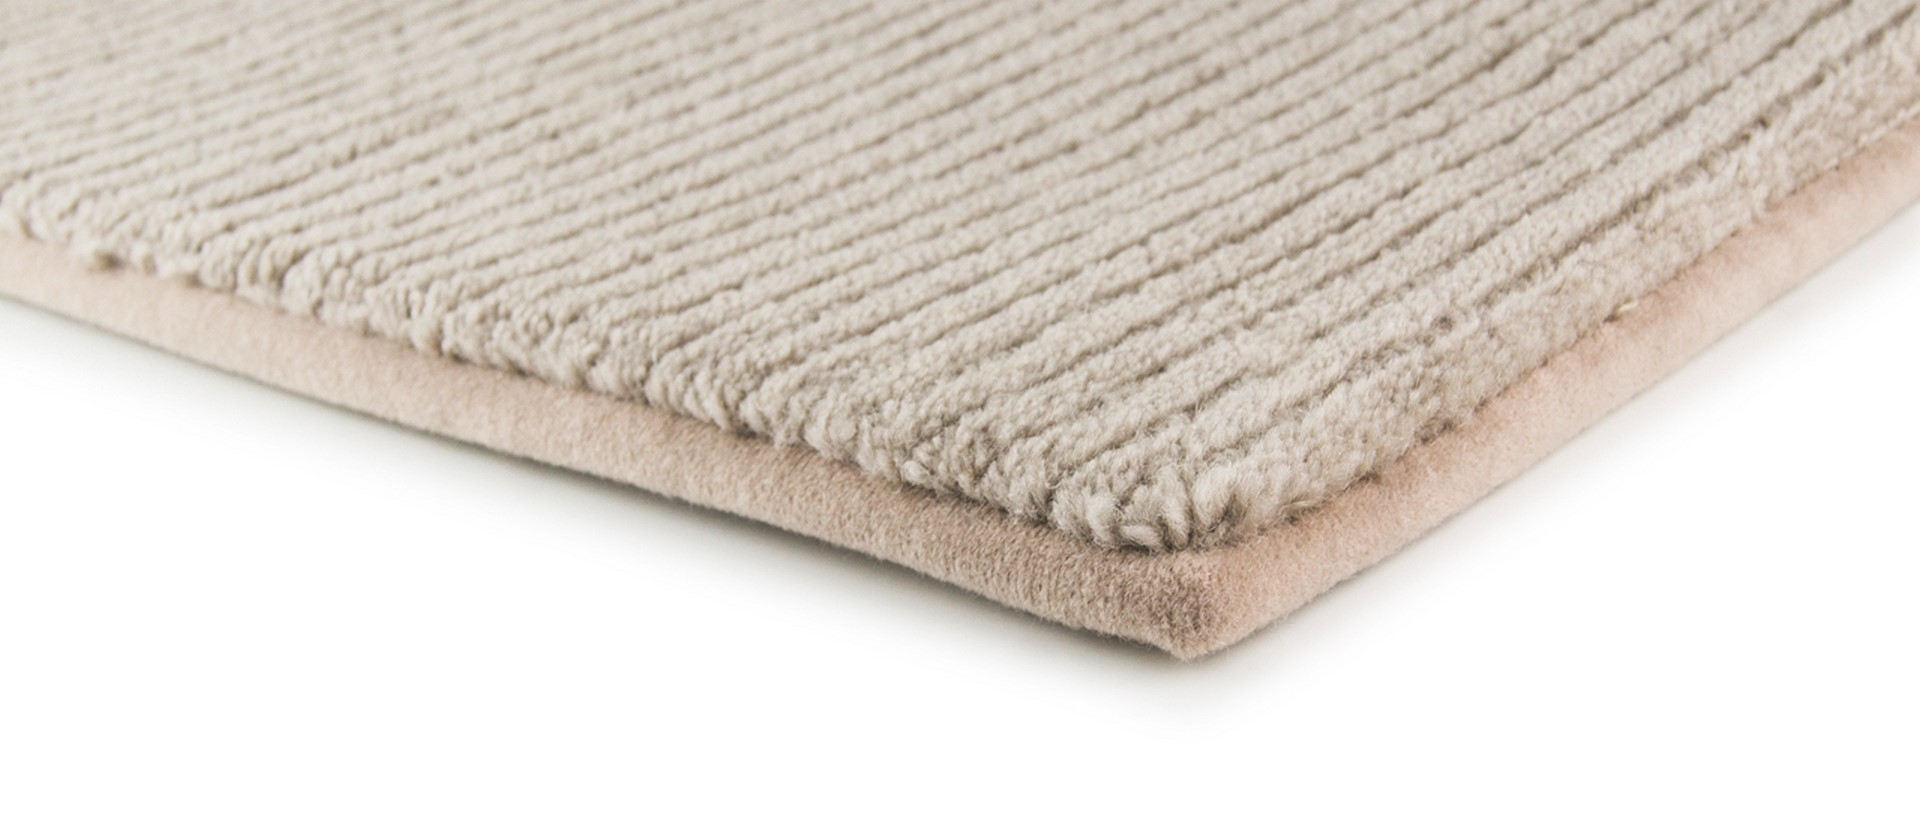 wool carpet 100% natural RCFWMON